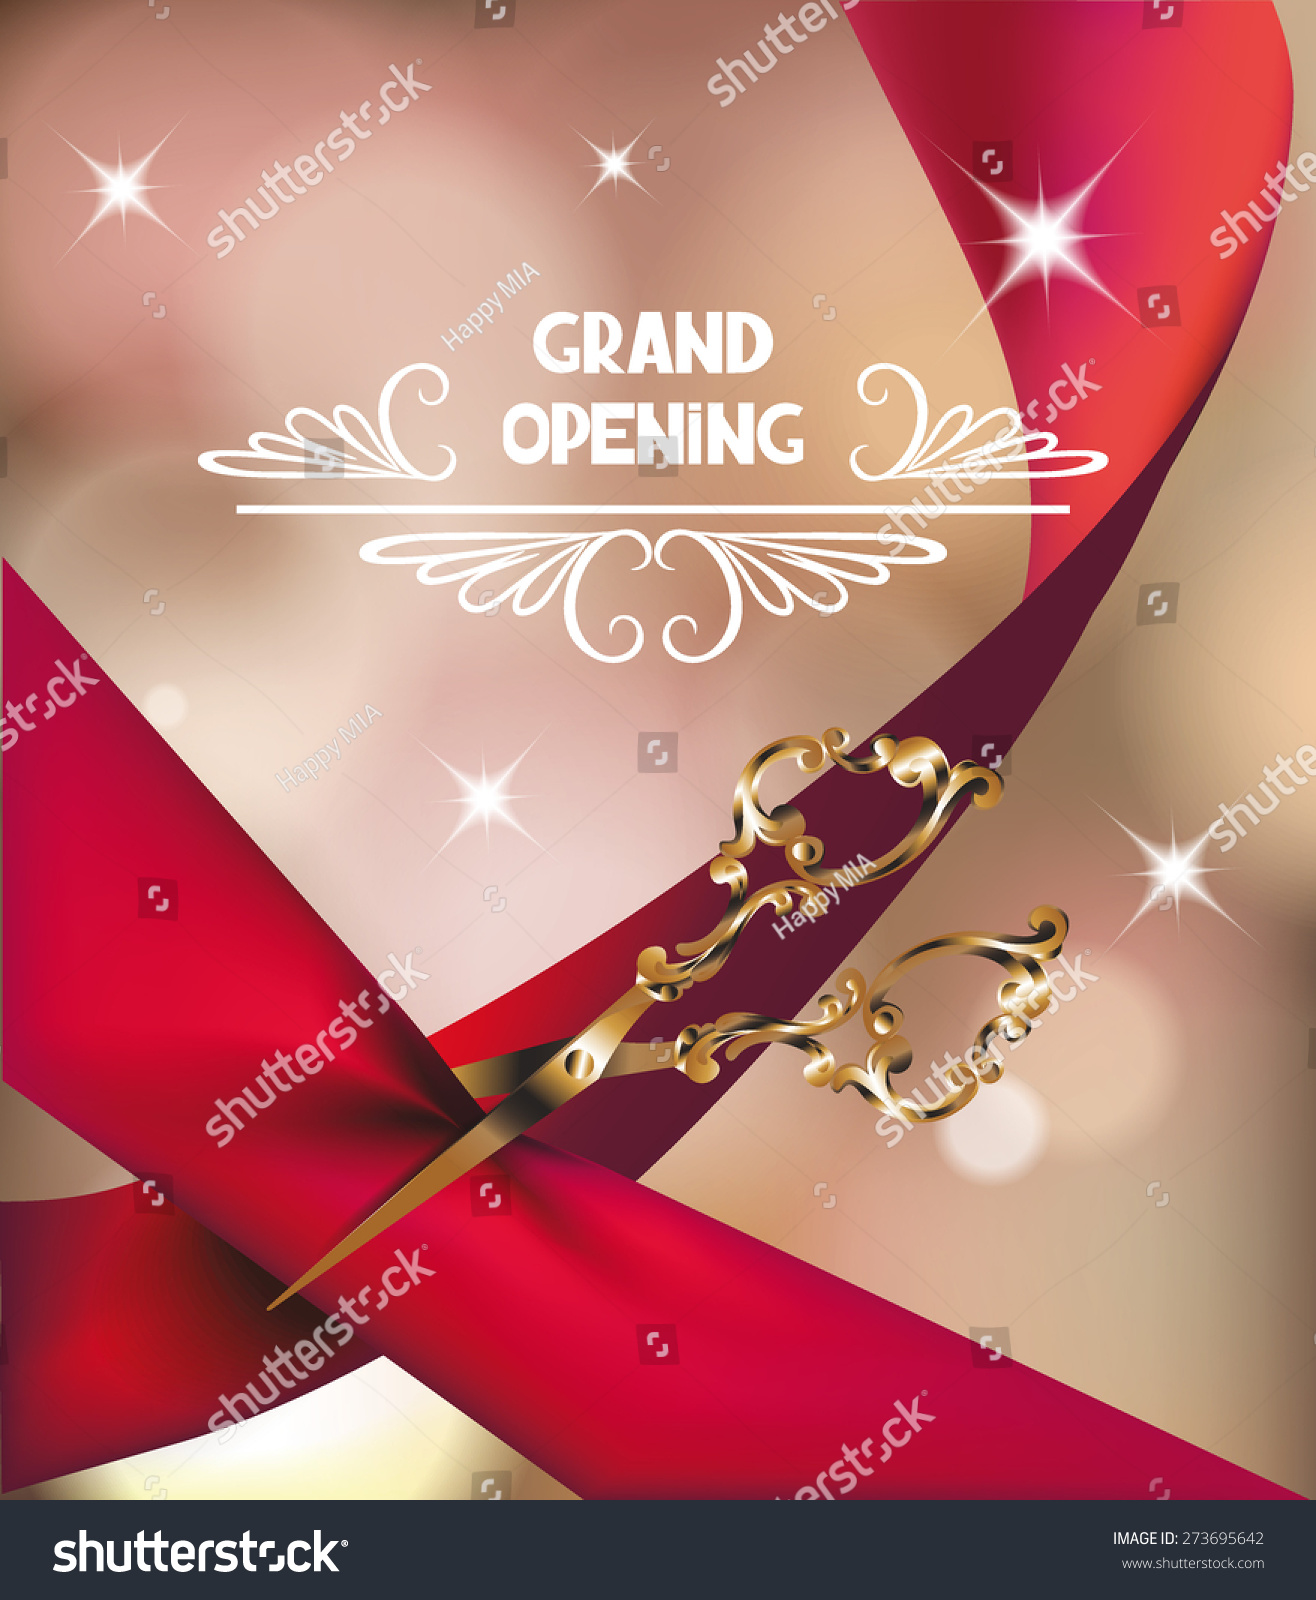 Ribbon Cutting Invitations as awesome invitation template